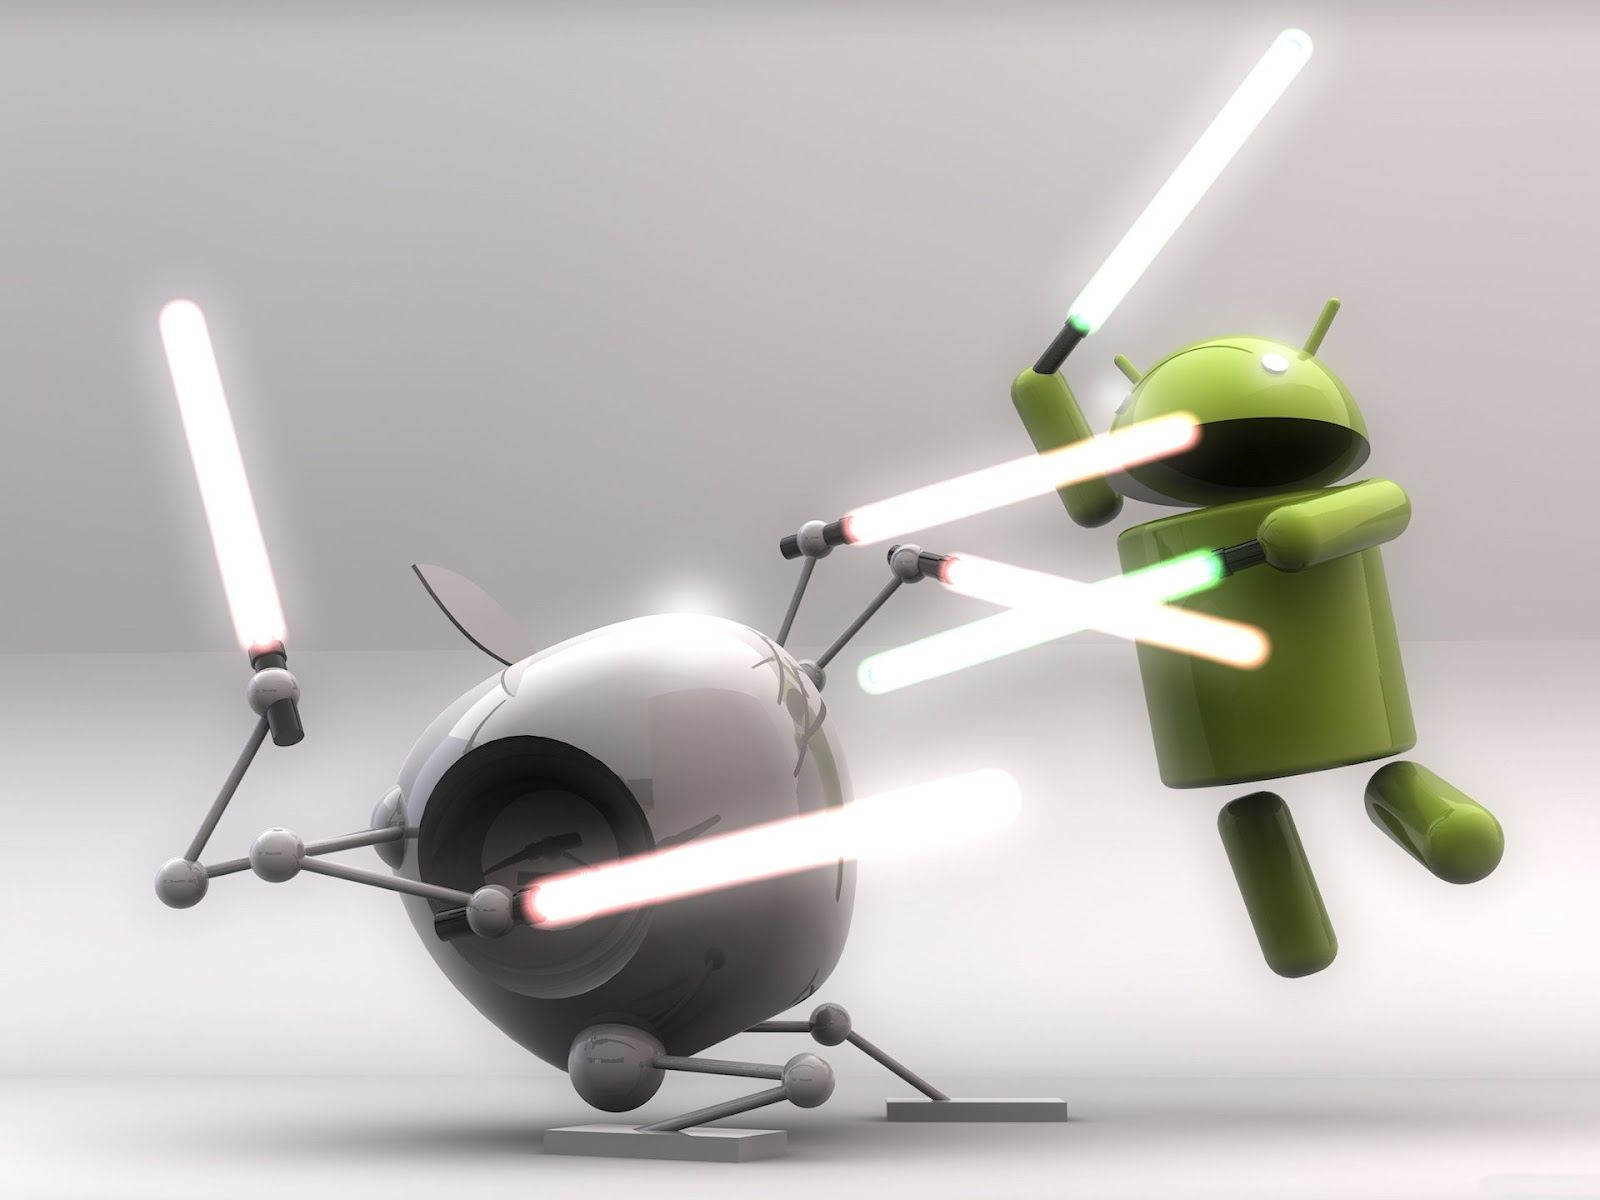 uberfuzz android vs apple with lightsabers hd wallpaper